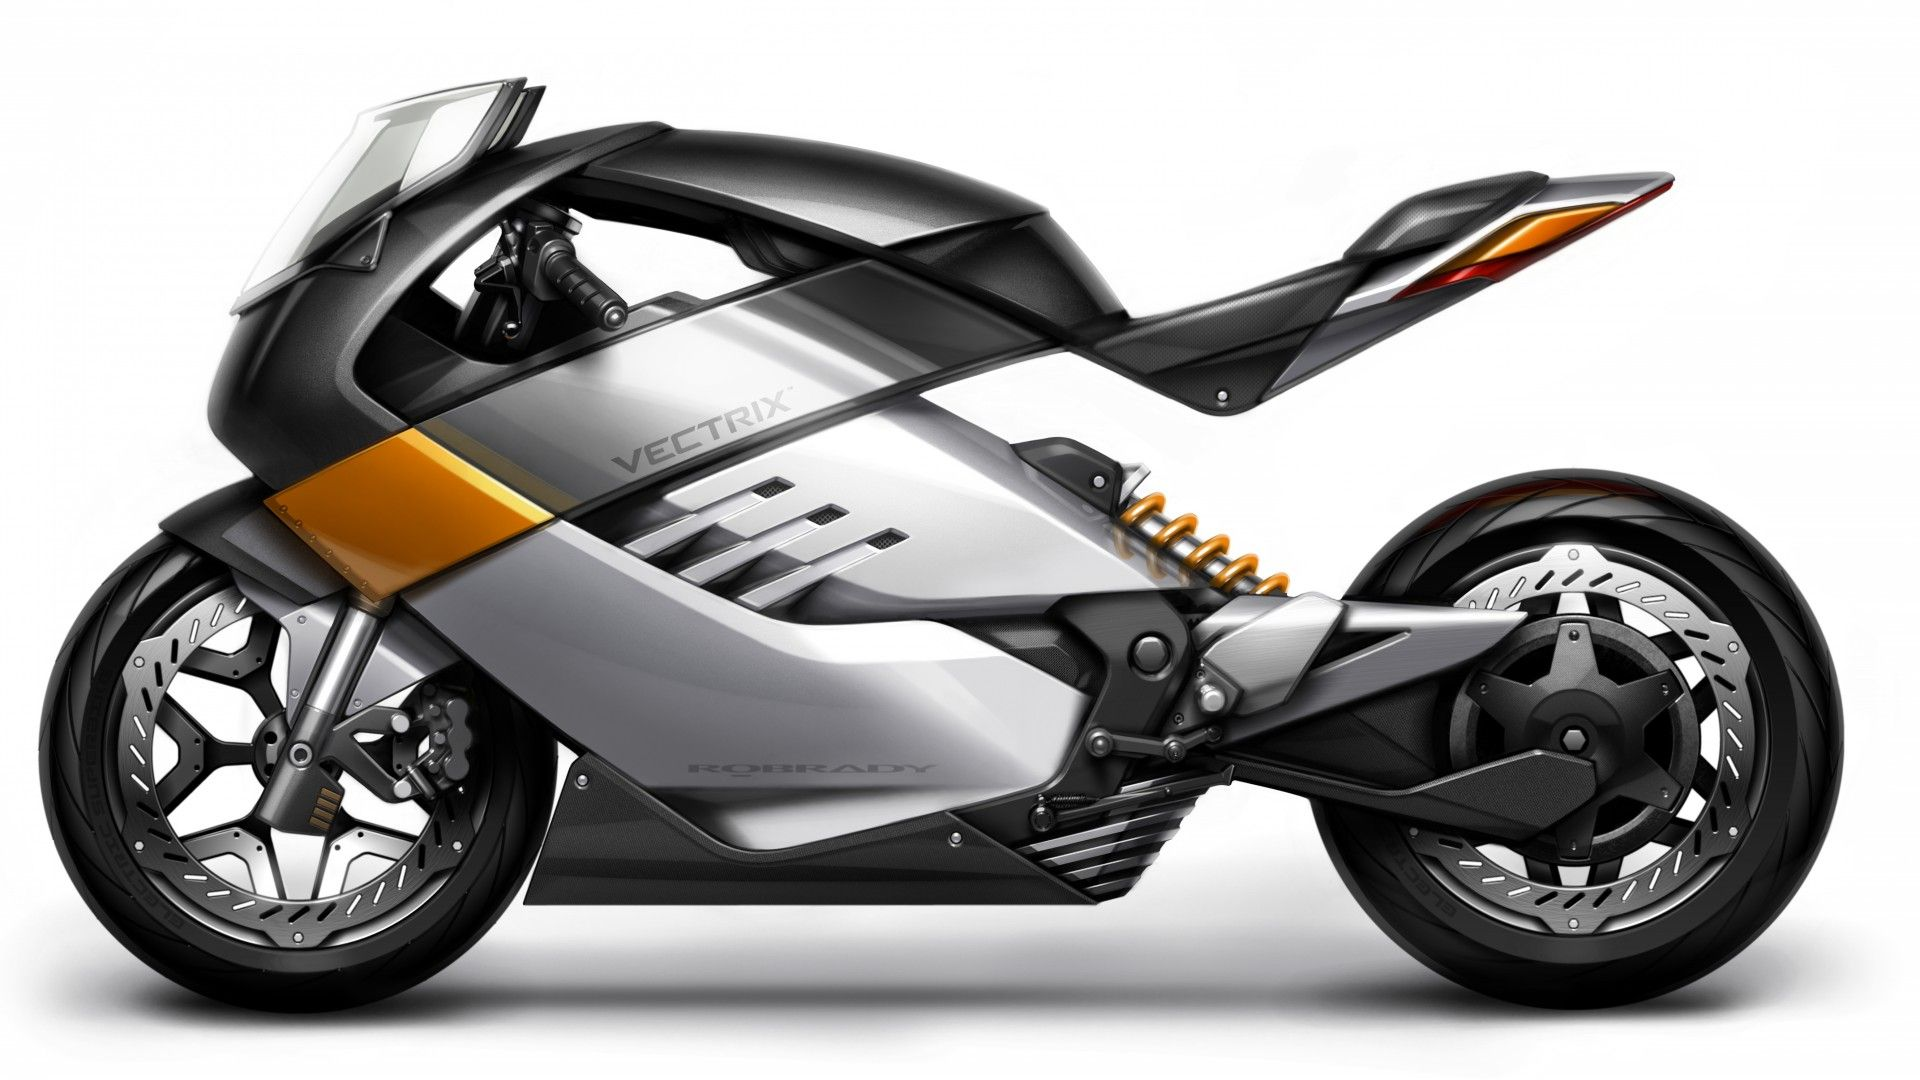 Vectrix, concept, electric motorcycle, superbike, ecosafe, review, side, test drive